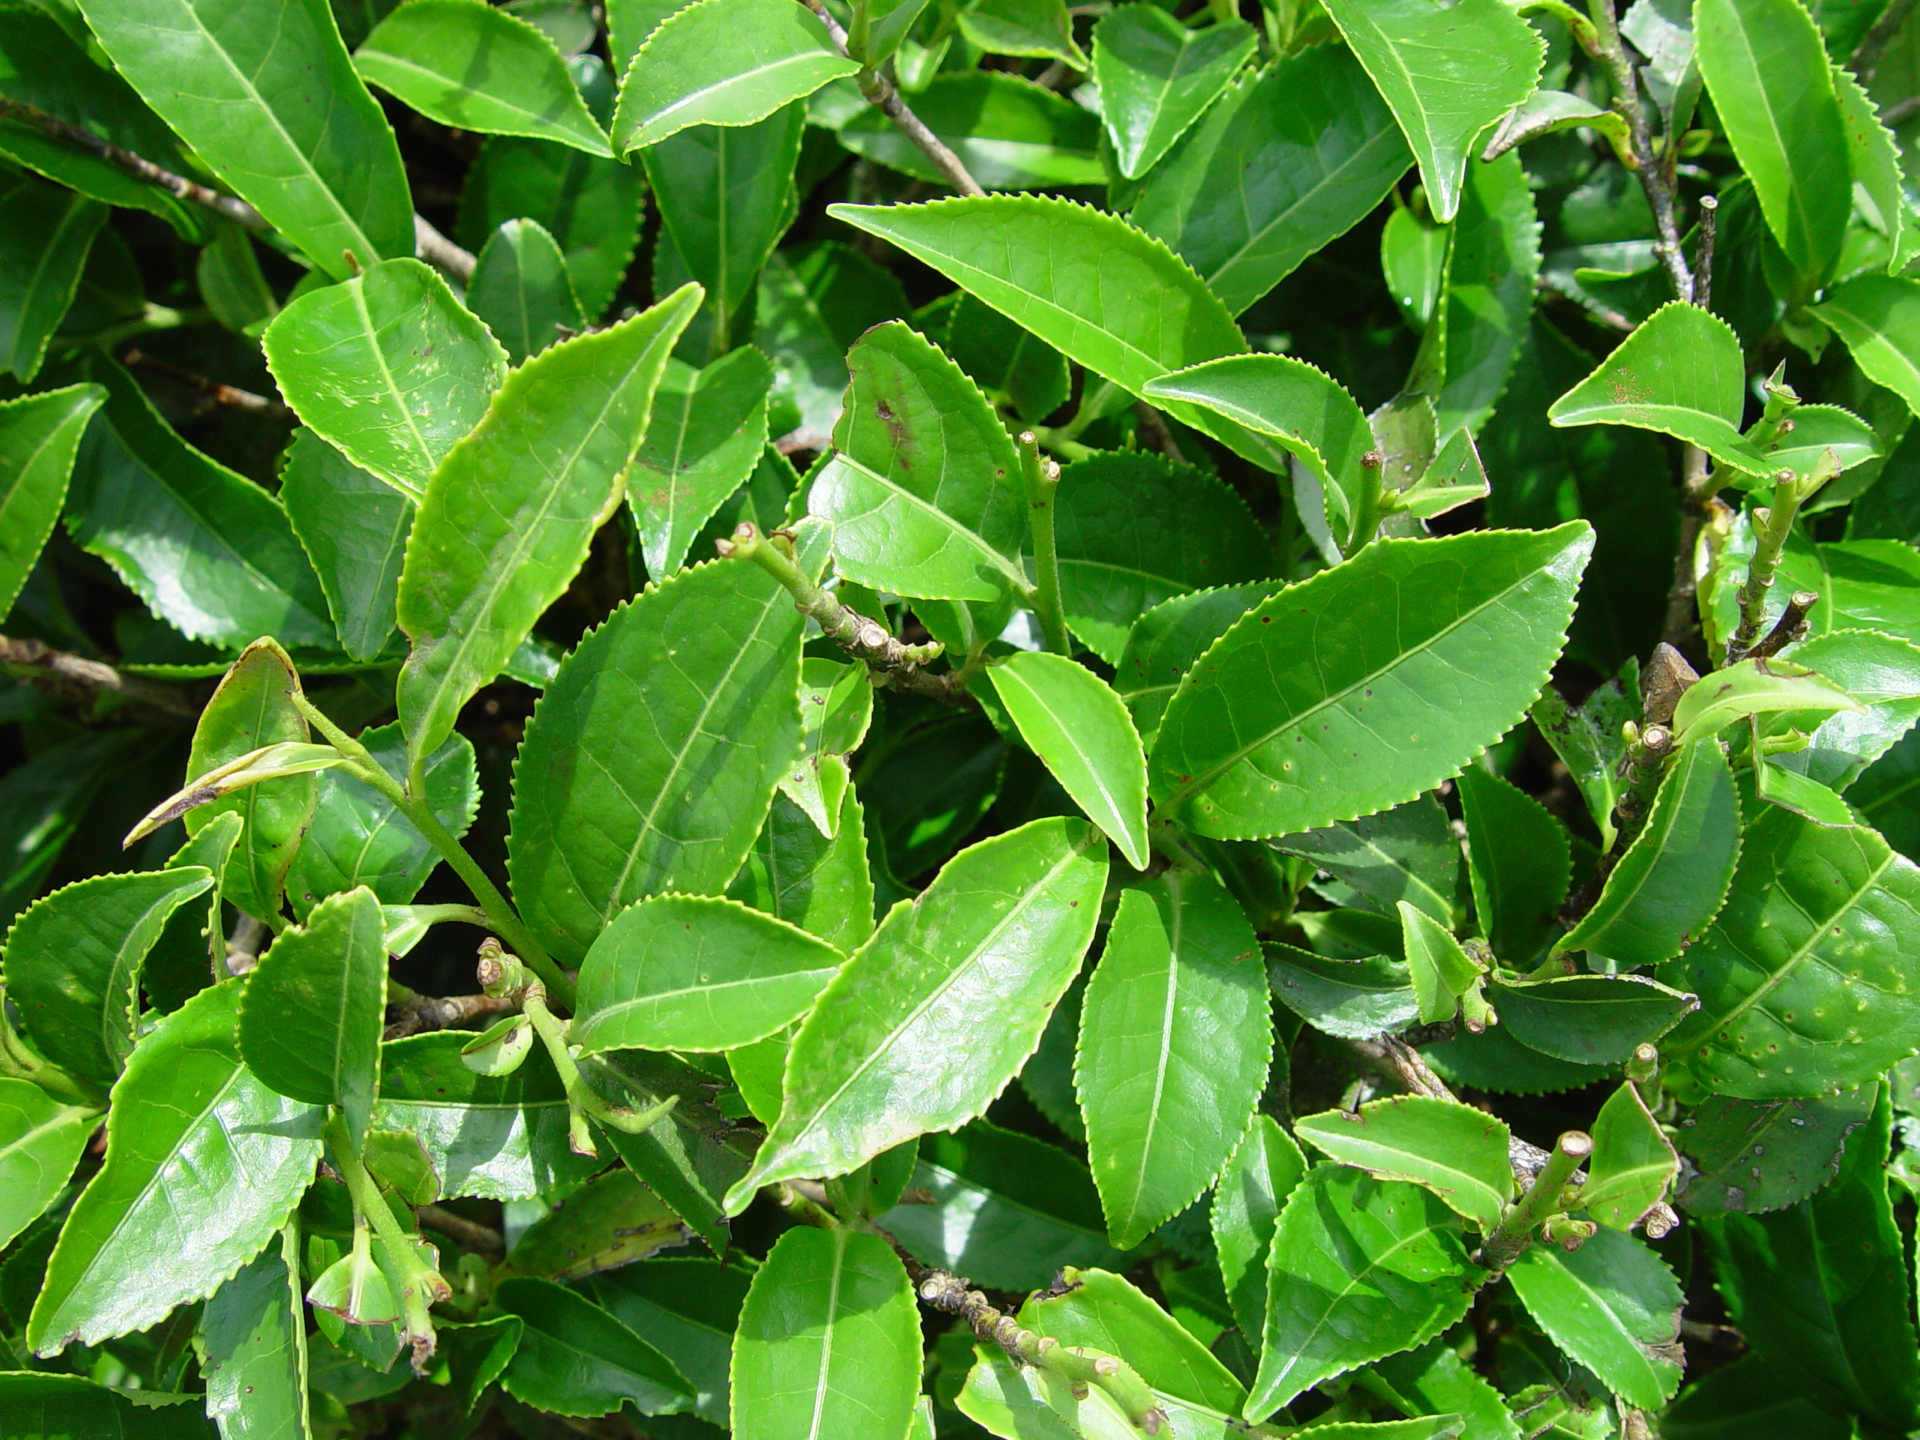 All true tea varietals are derived from the same plant, Camellia sinensis, and contain health-promoting compounds.